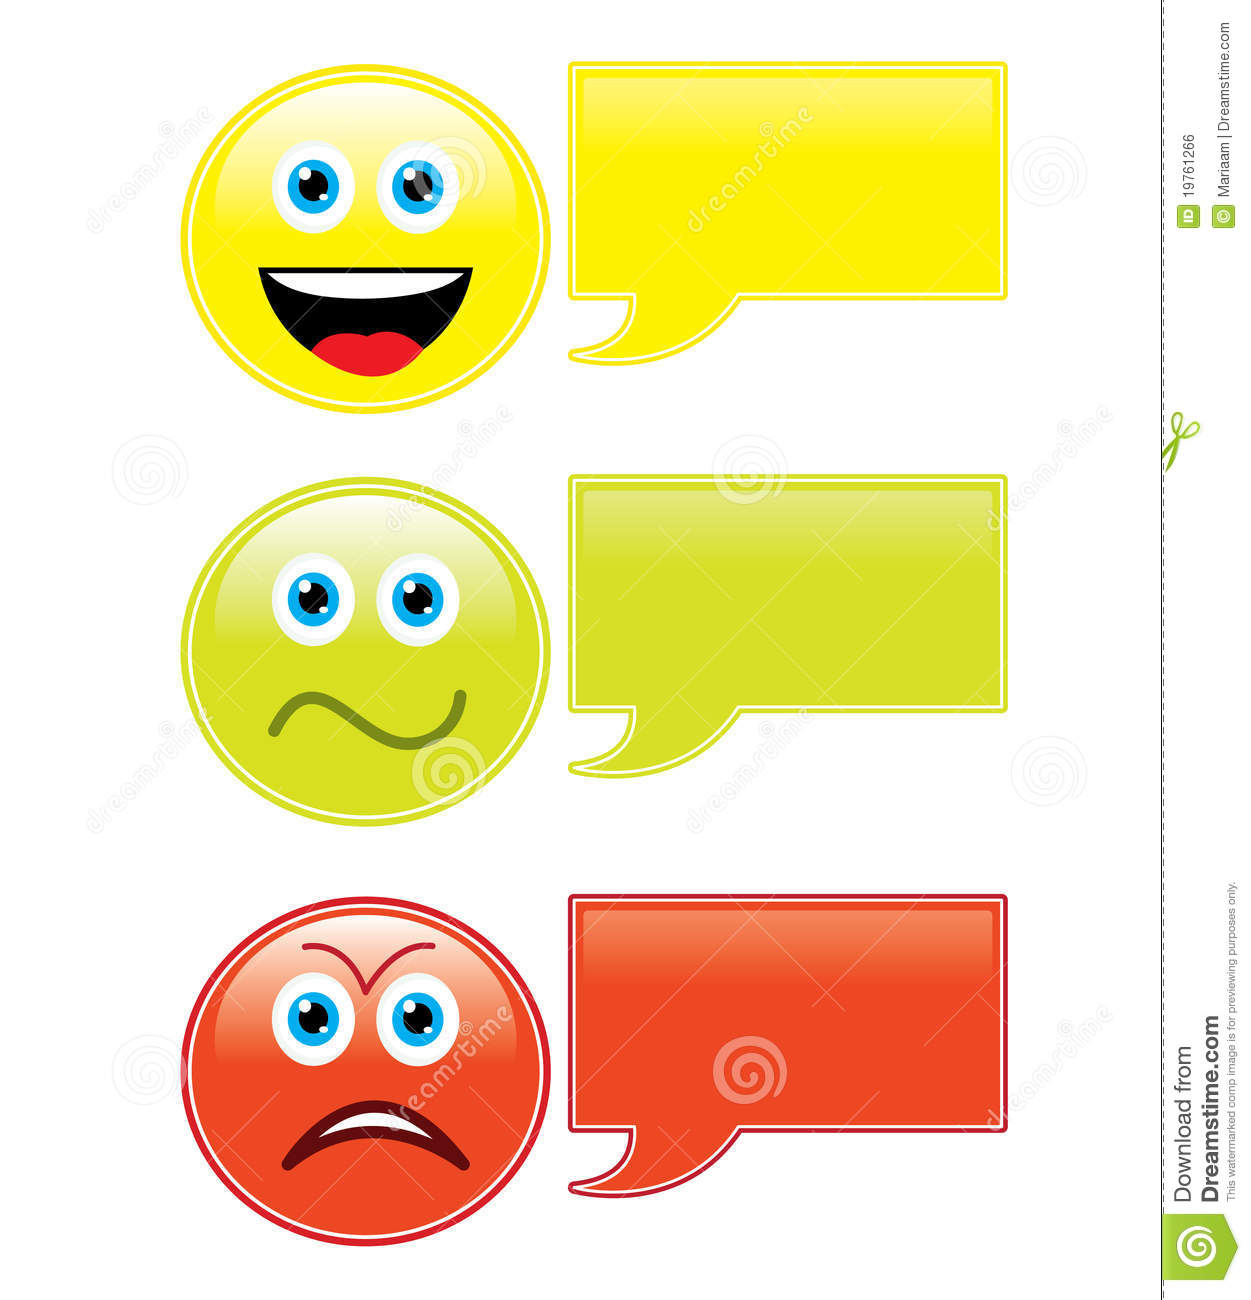 Emoticons with speech bubbles